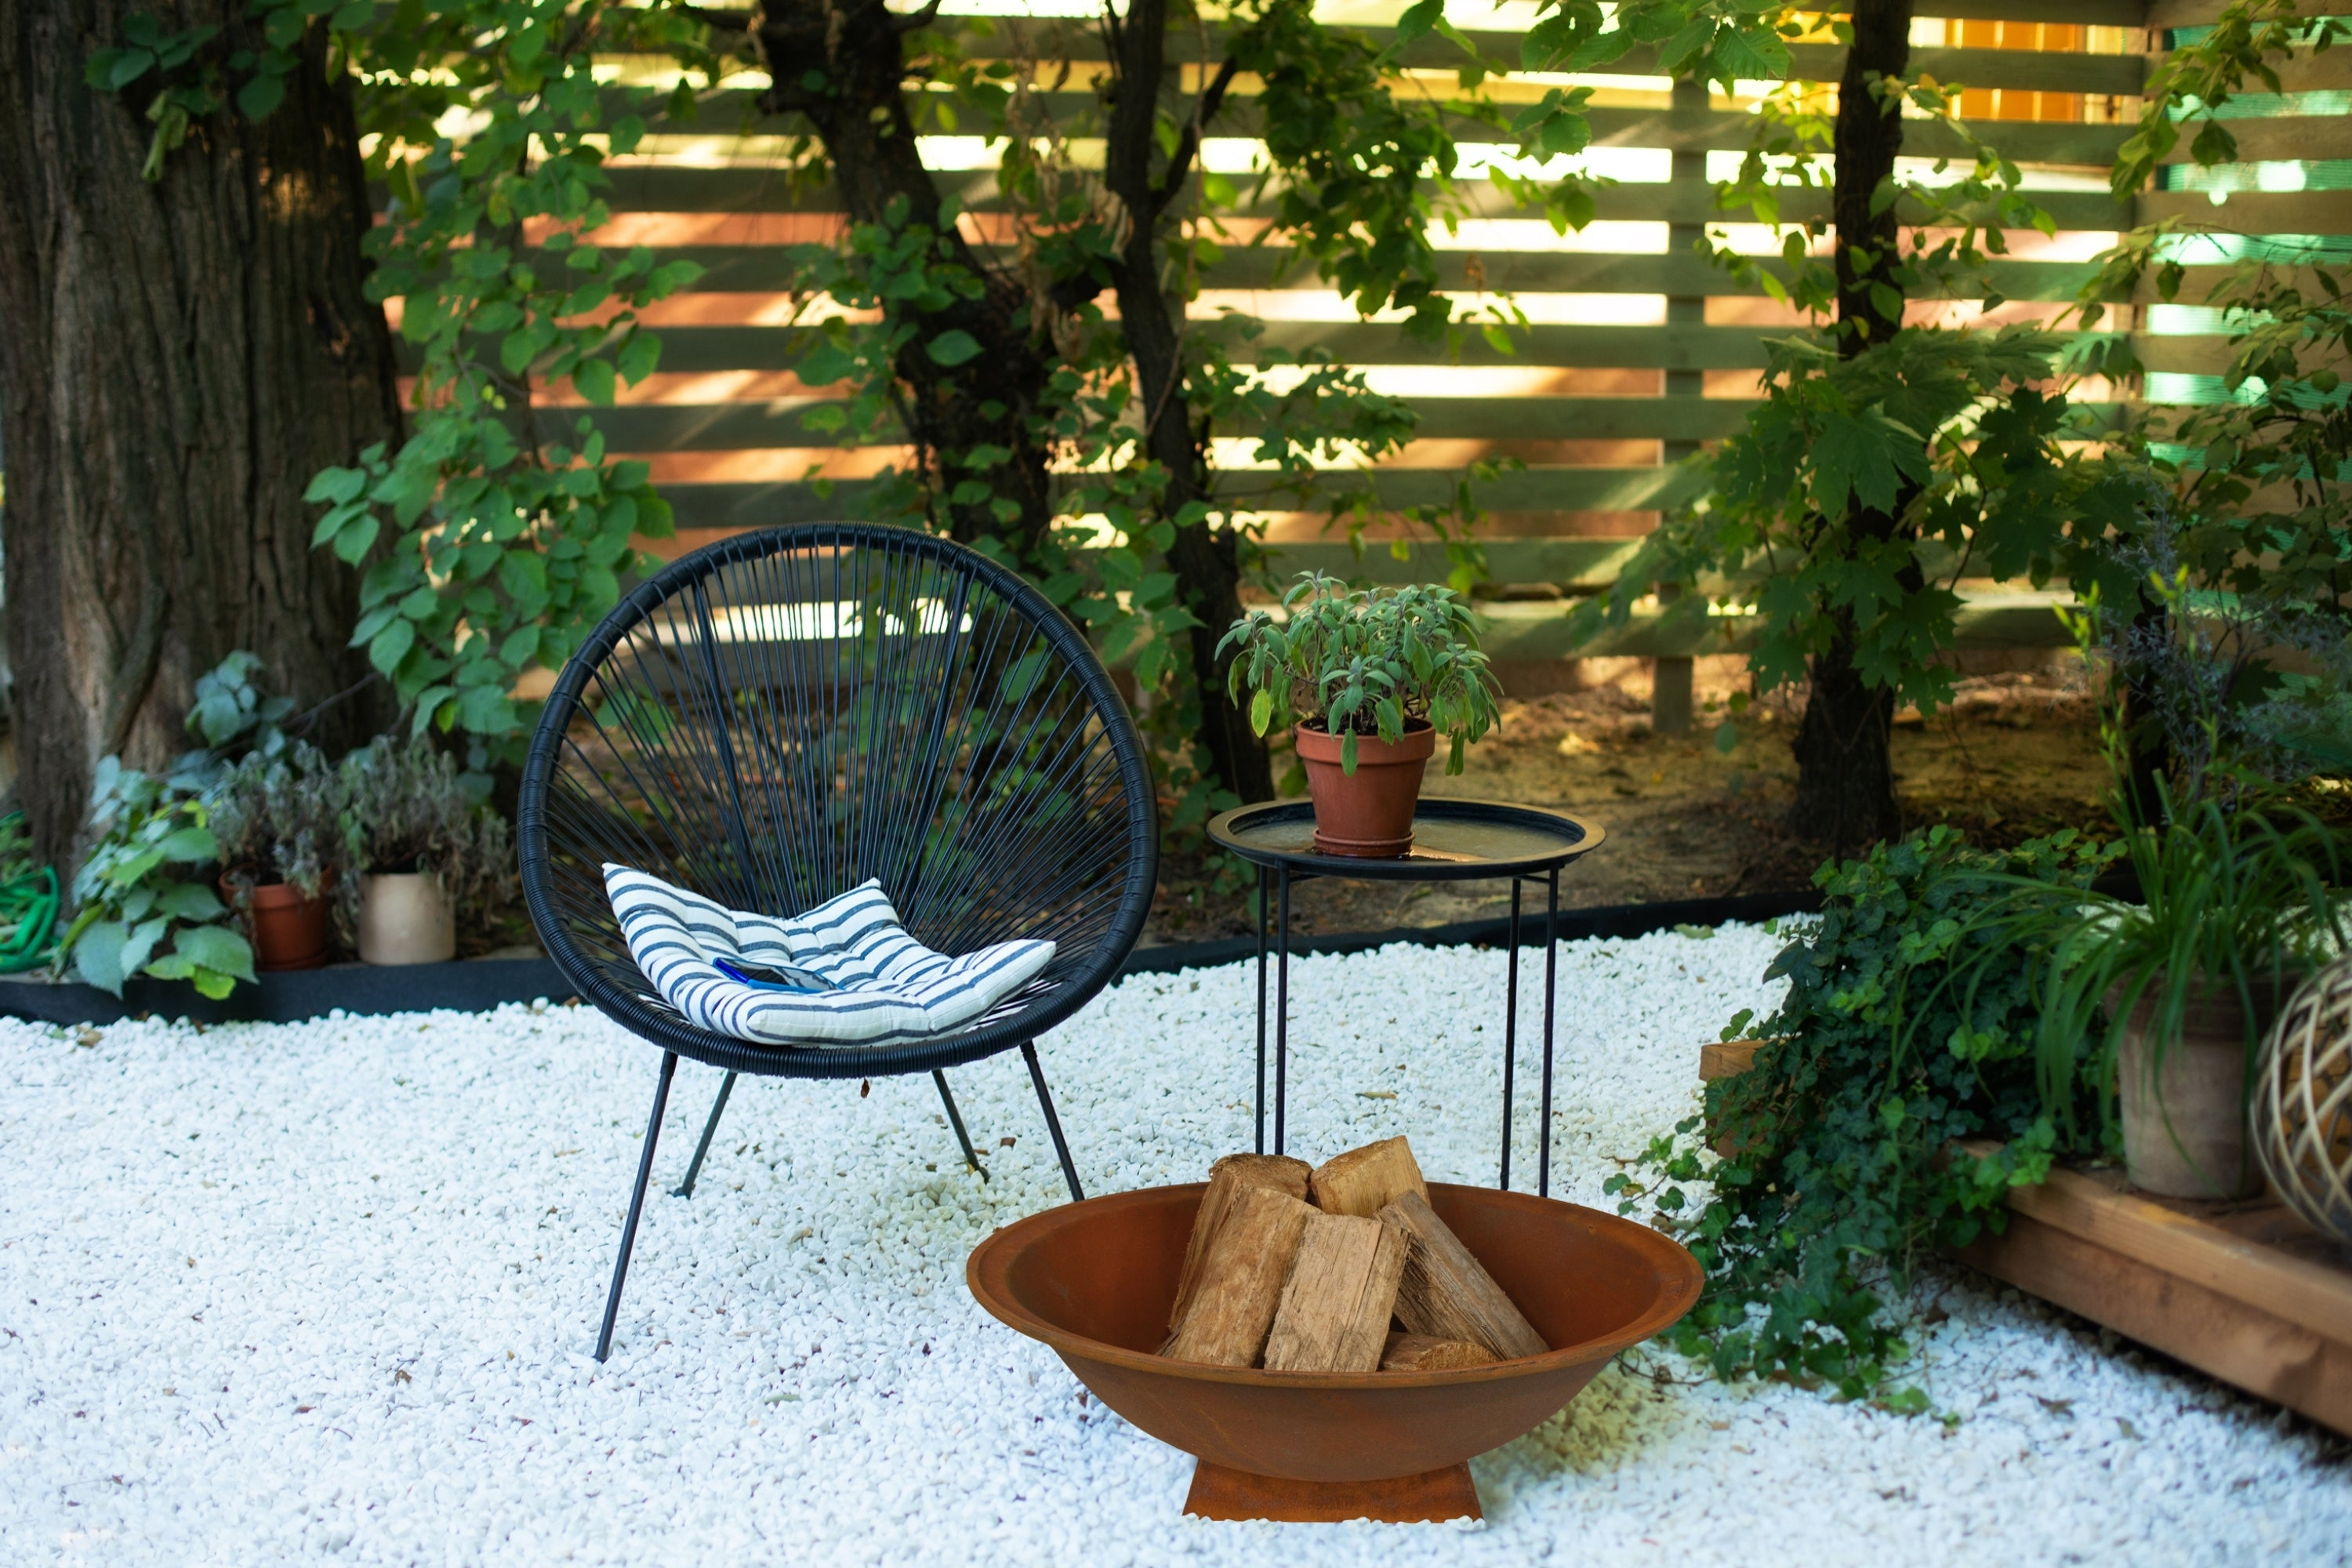 Outdoor-Fire-Pit-Area-Featuring-The-Hestia